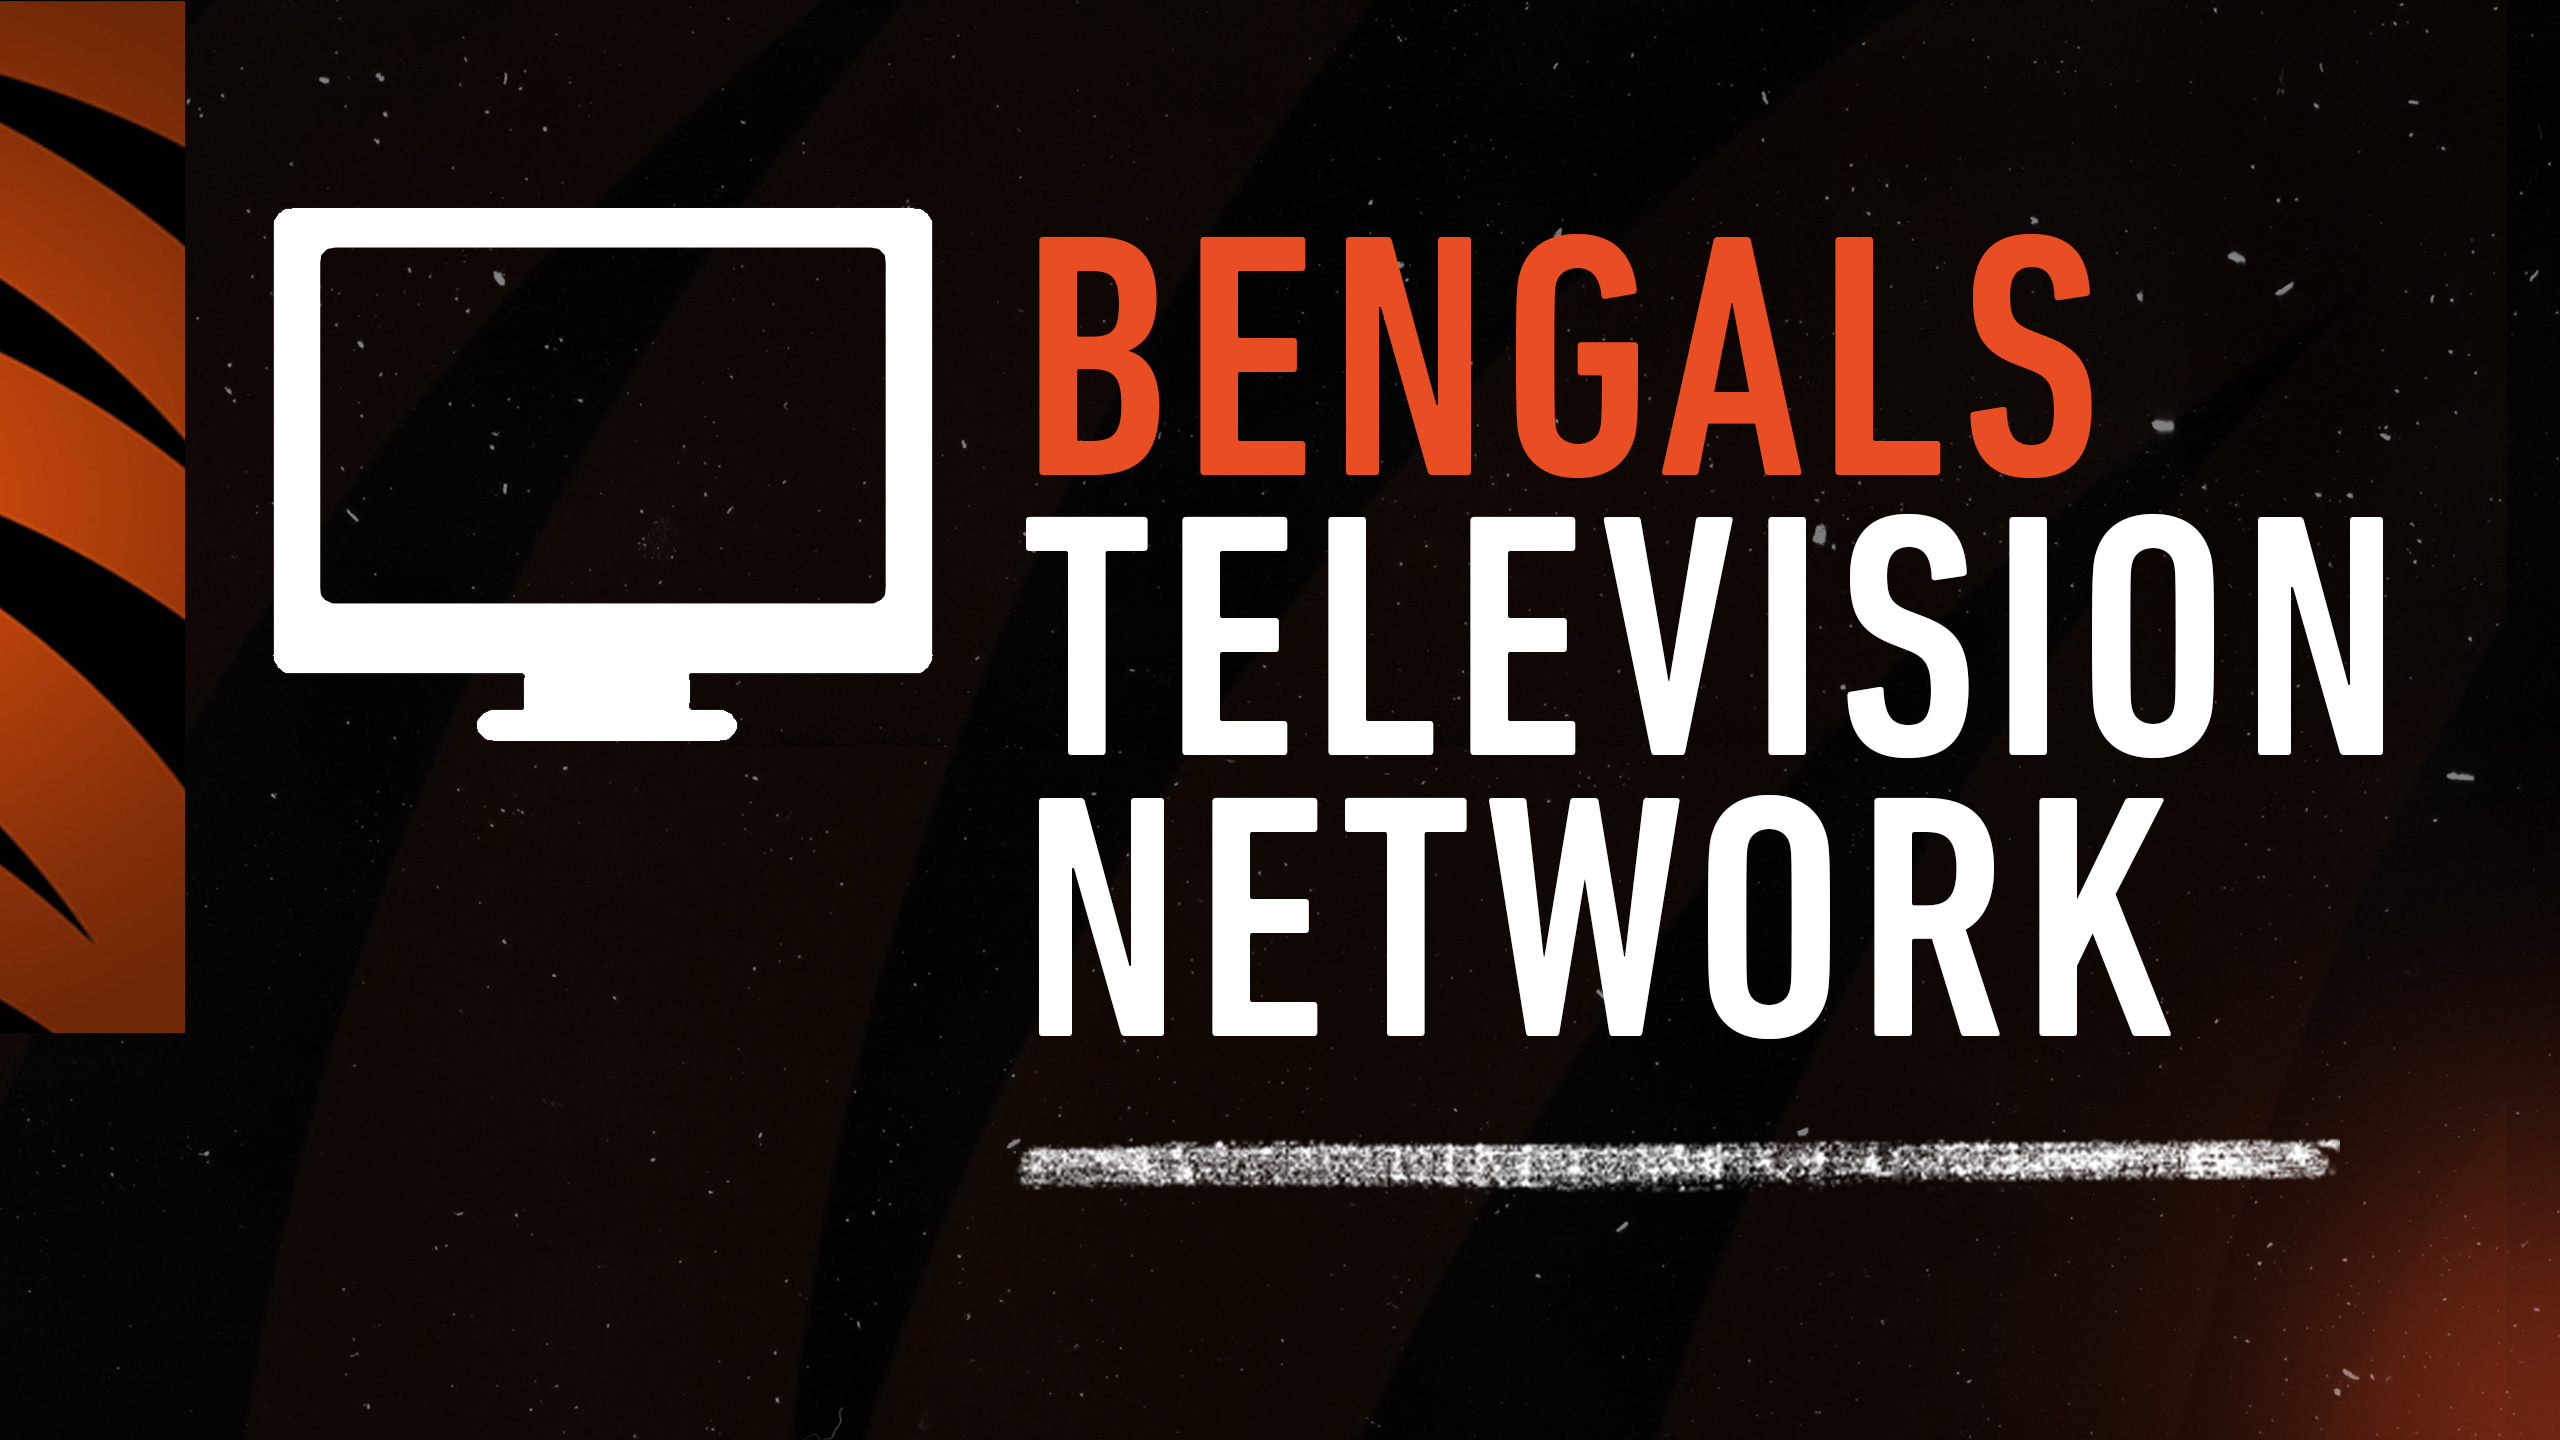 Bengals Television Network